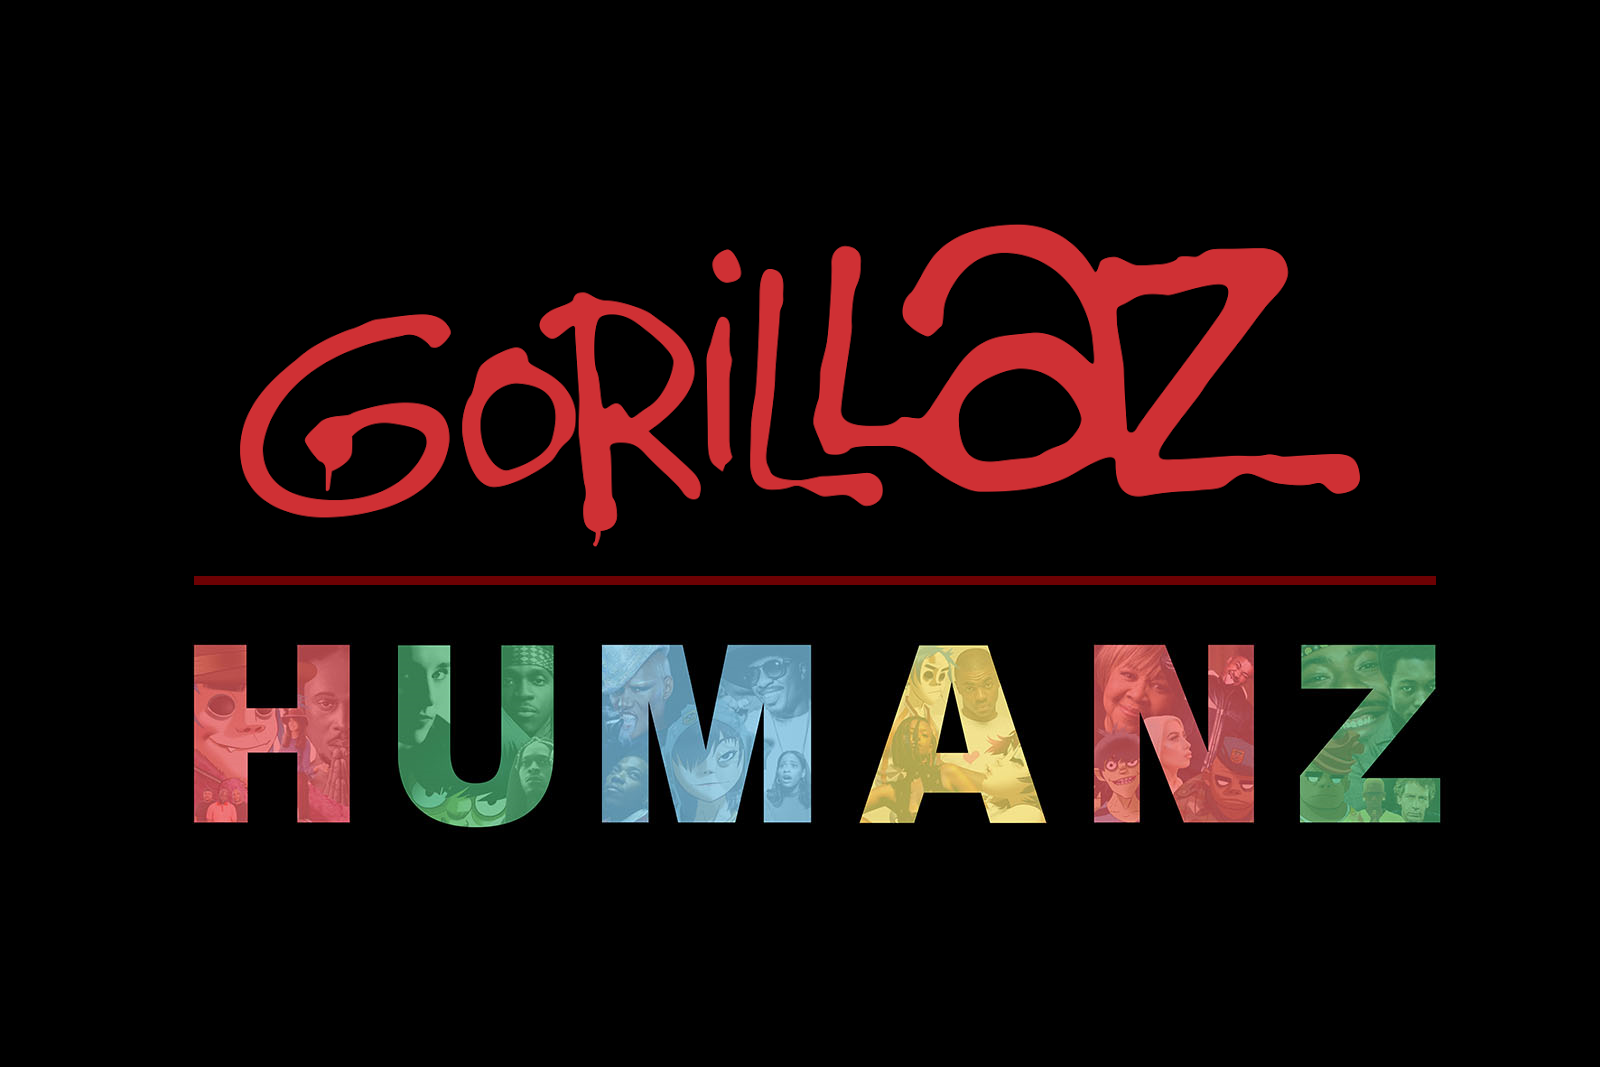 Gorillaz Humanz Wallpaper (1920x1080) Need iPhone 6S